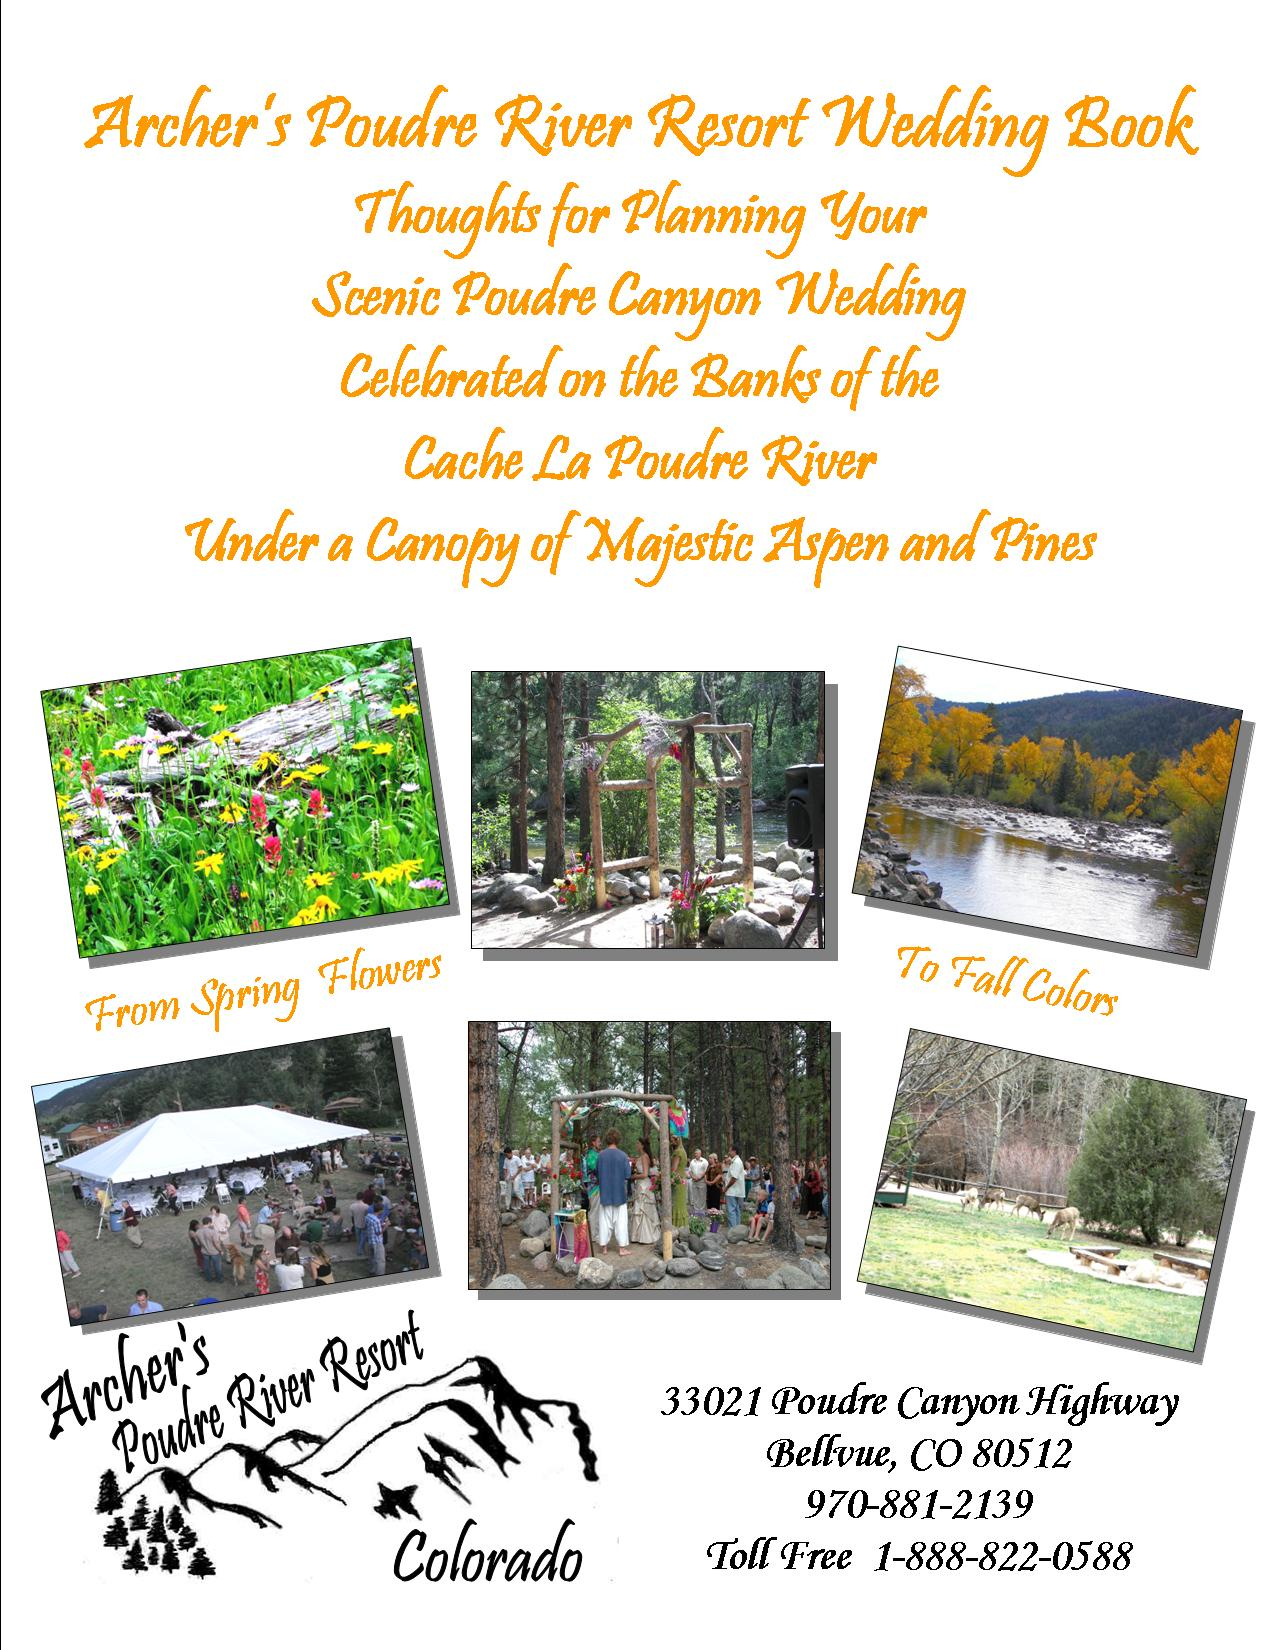 Archer's Poudre River Resort Wedding Book Cover